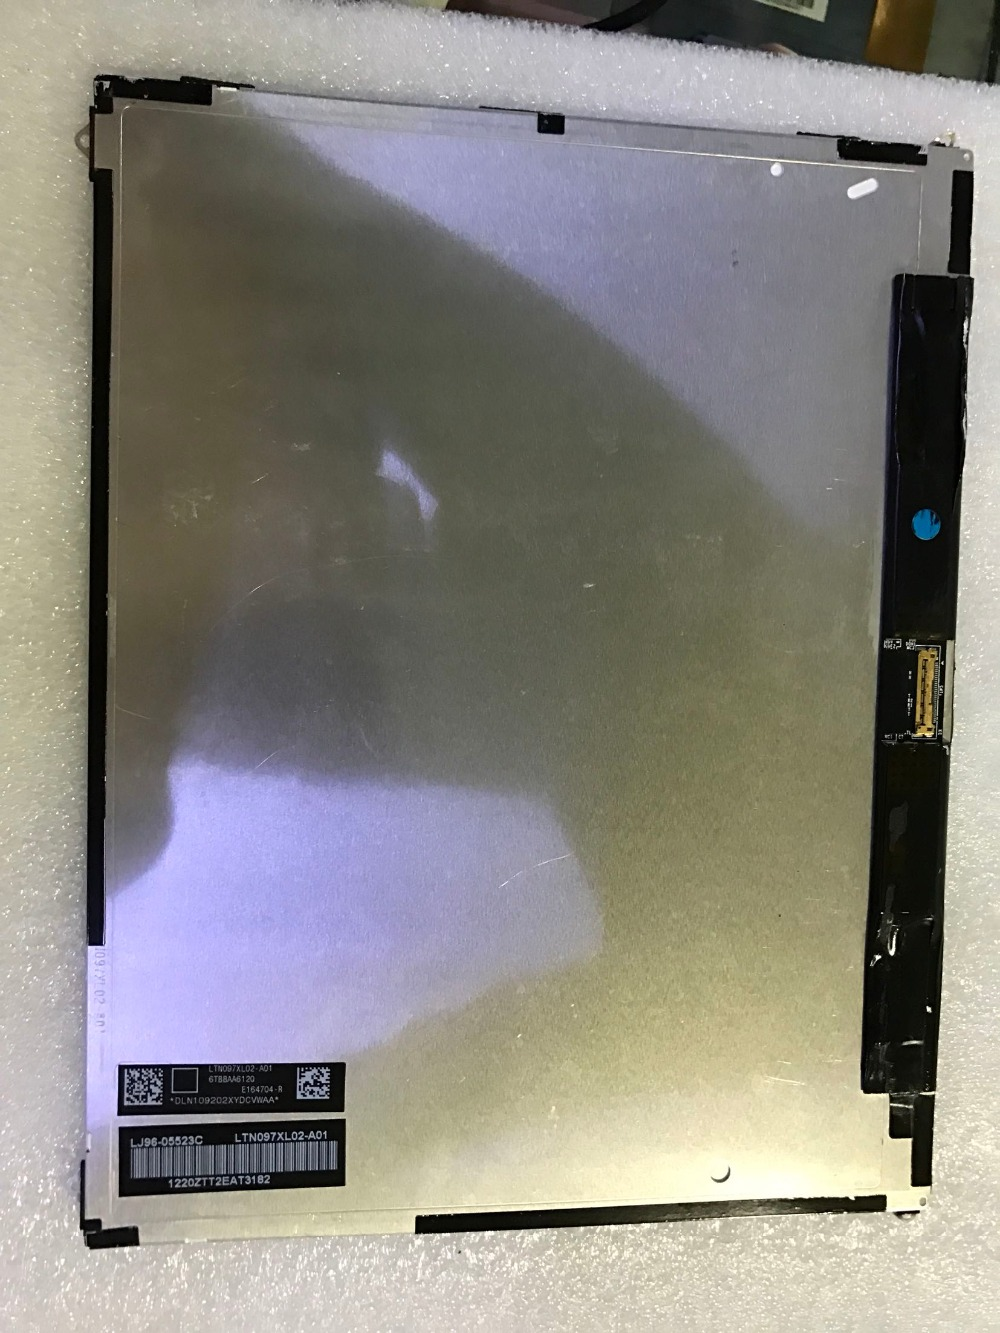 free shipping Original New 9.7 inch LCD screen Model: LTN097XL02-A01 free shipping original new 7 inch lcd screen model m070wx04 bl v01 cable number m070wx01 fpc v06 page 6